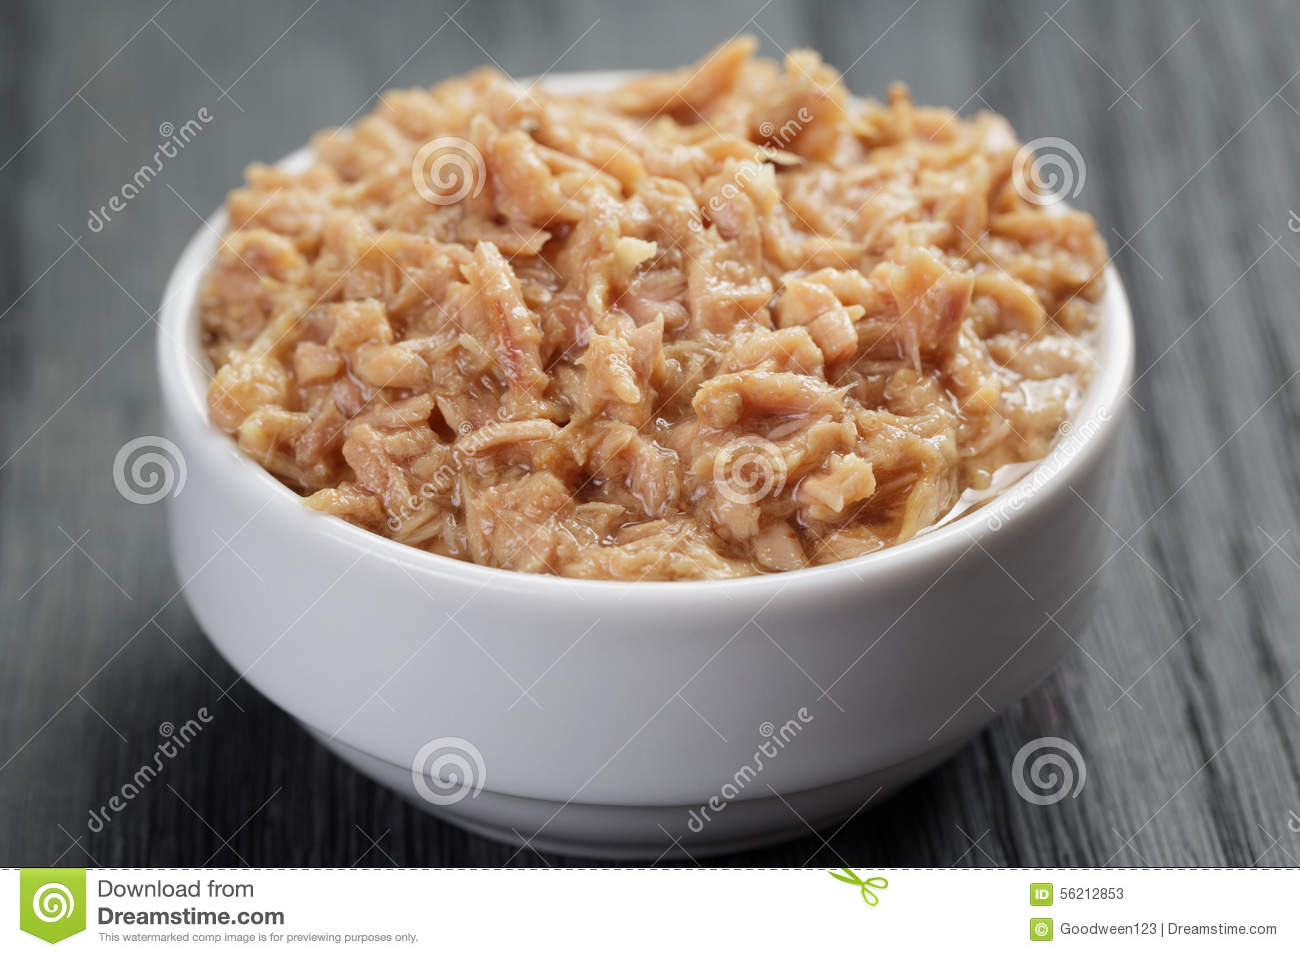 Canned tuna in white bowl on wood table